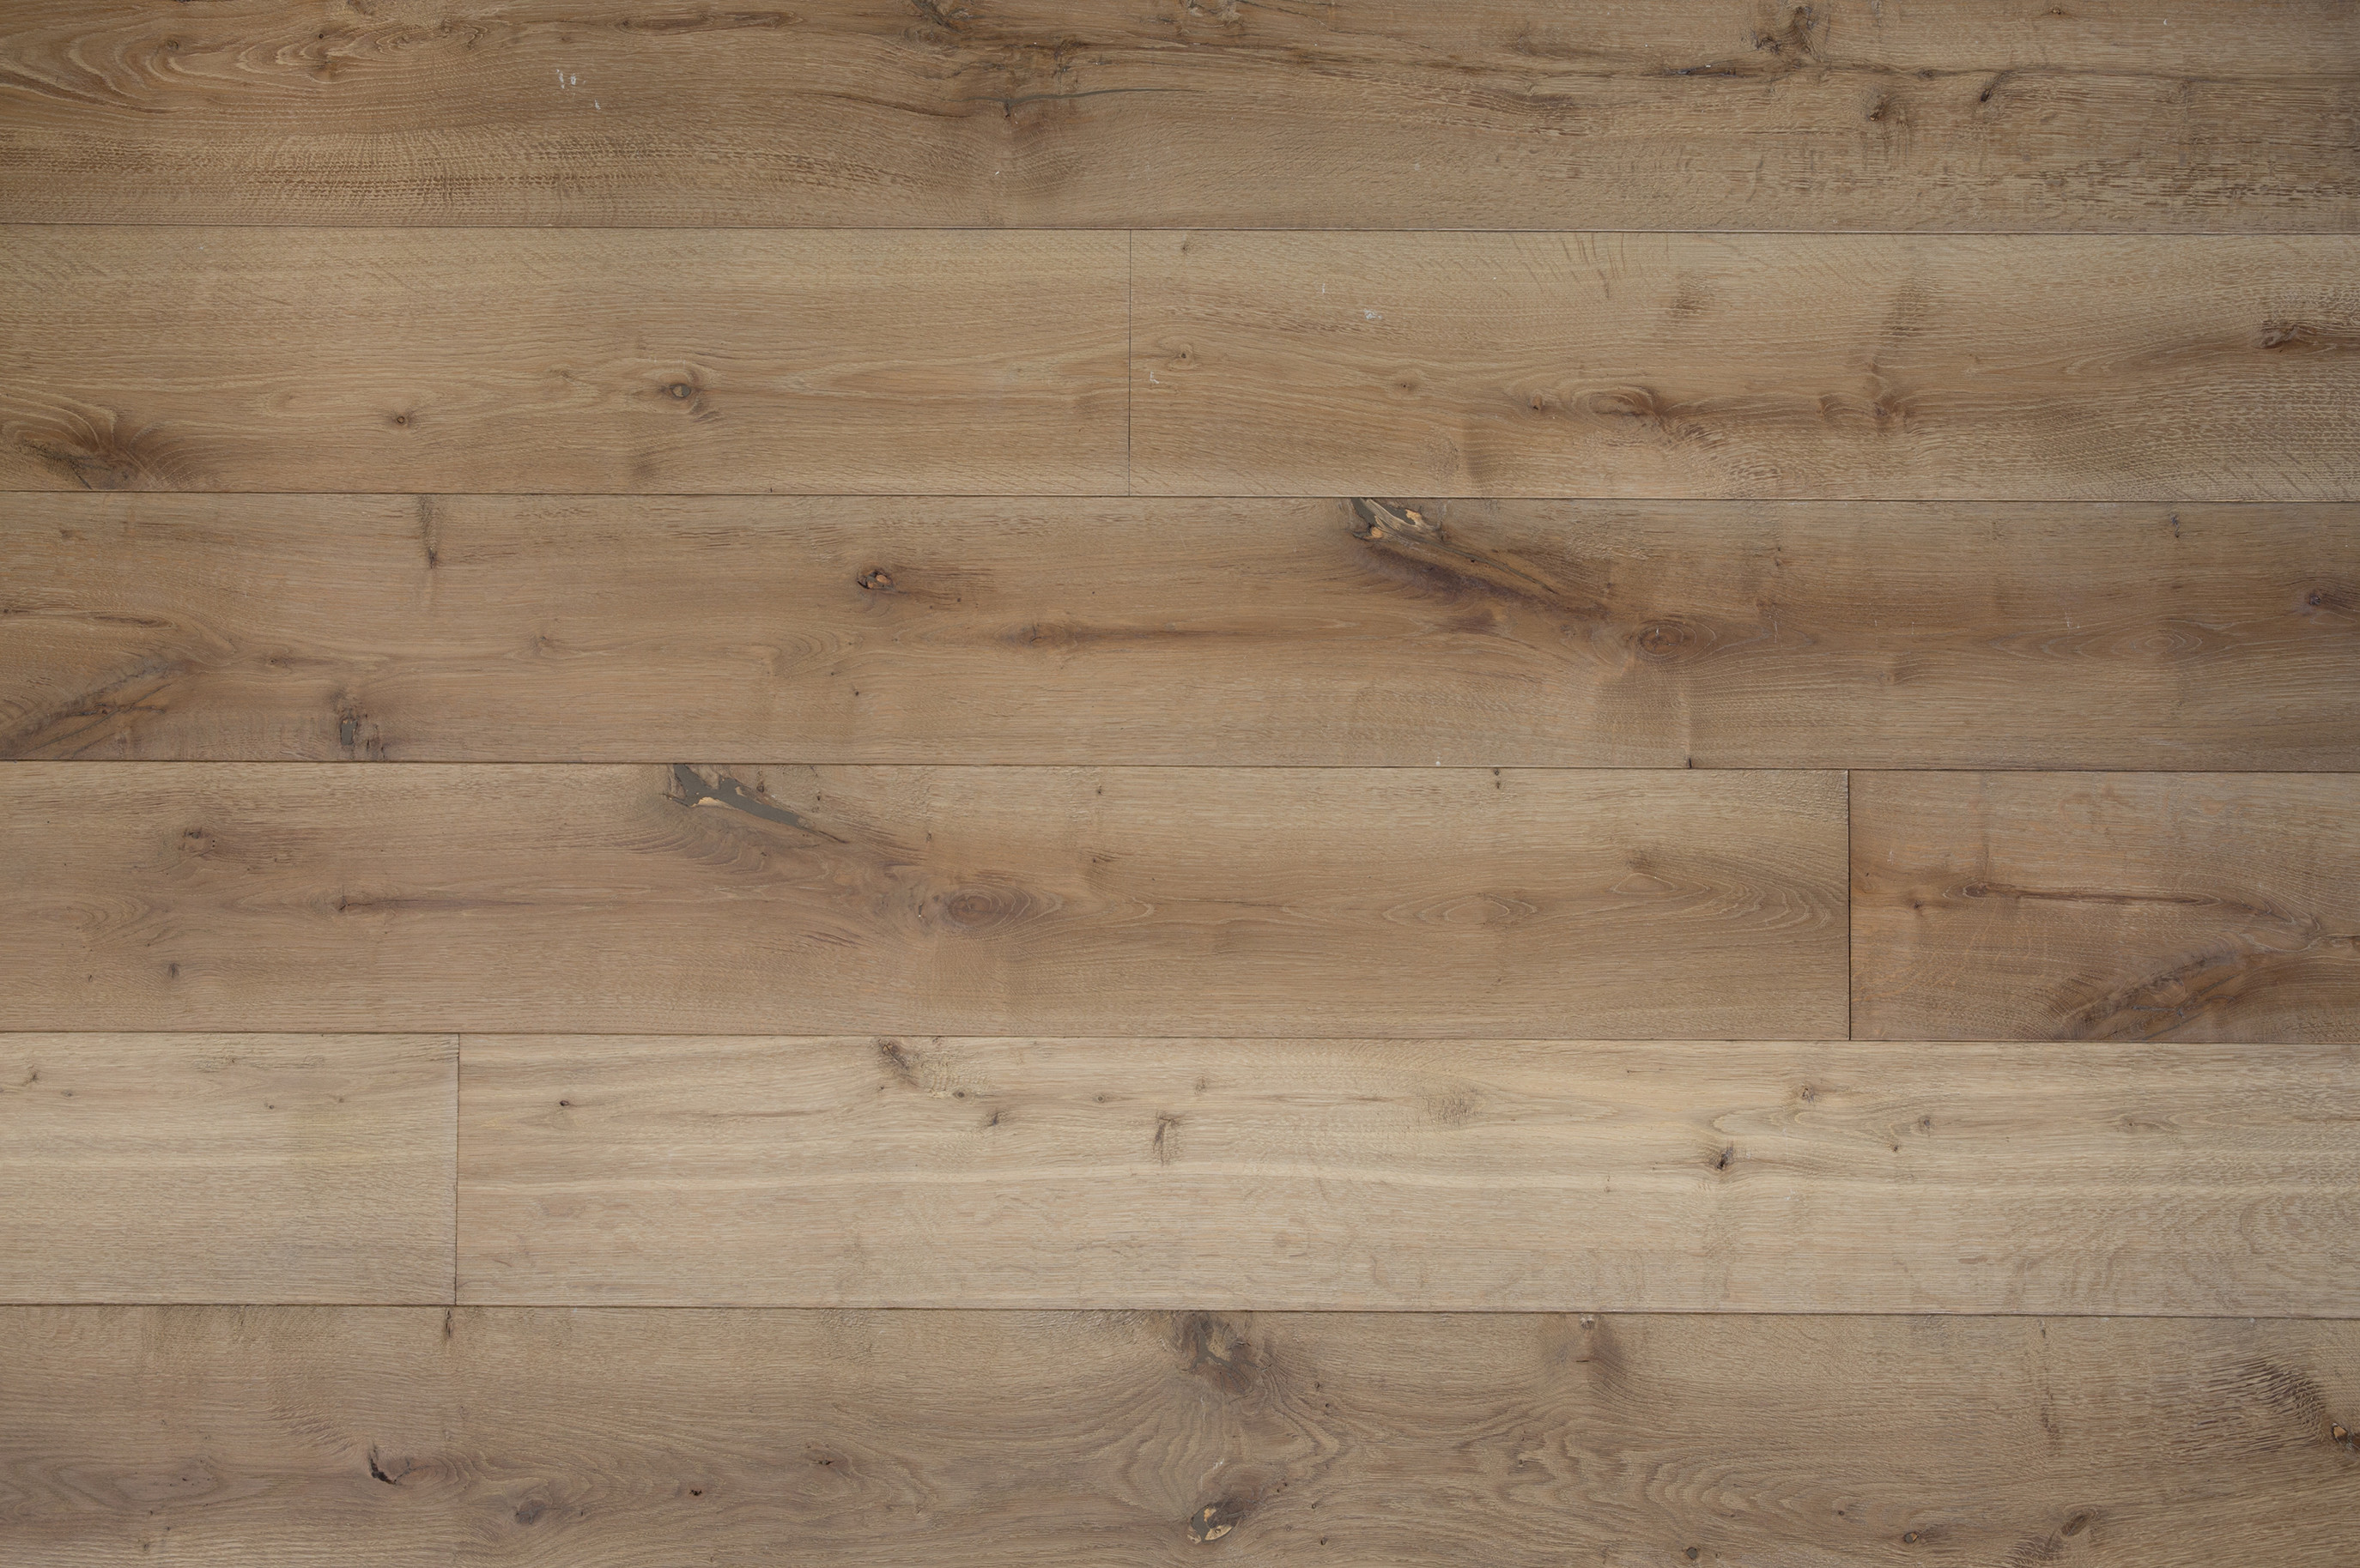 Washington Dc Hardwood Flooring Of Driftwood Natural Duchateau with Driftwood Natural